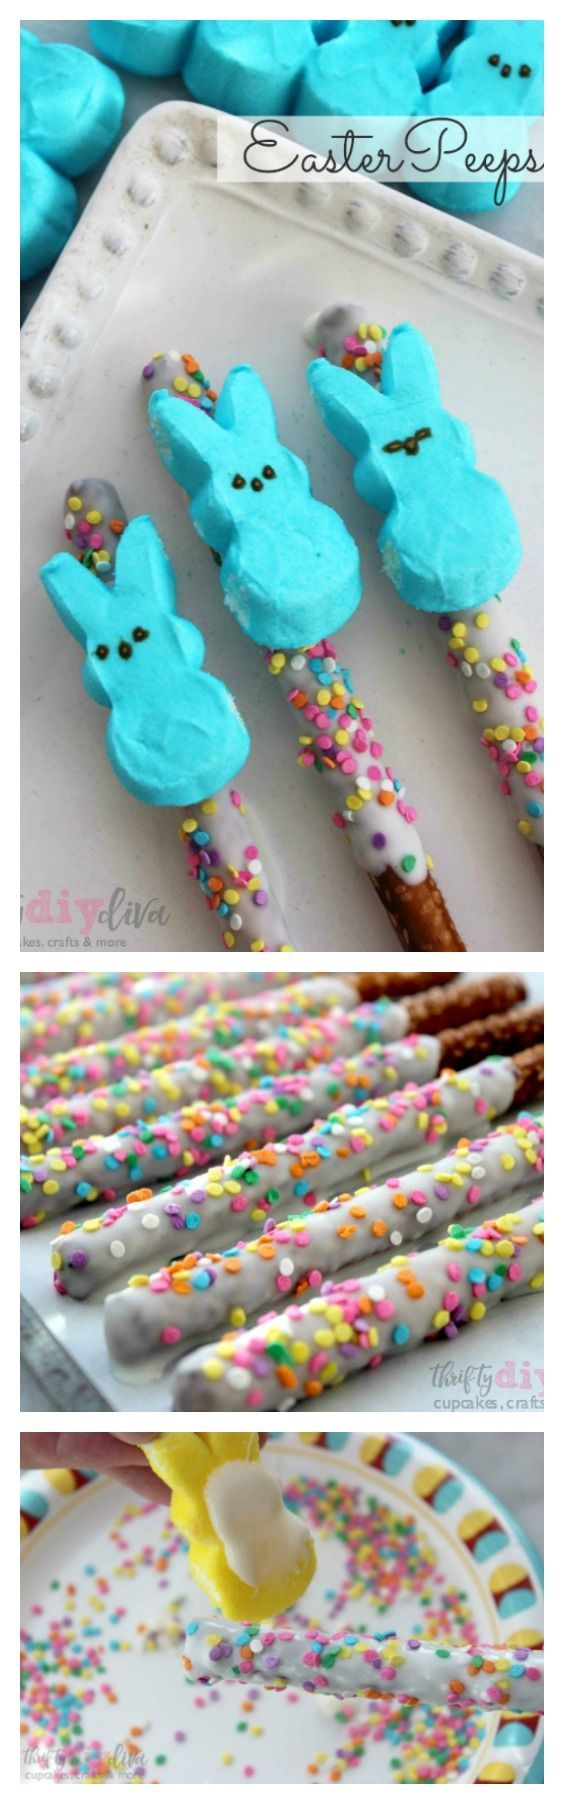 Peeps fans, you'll love these special Easter Peeps Pretzel Rods, decorated in colorful sprinkles and dipped in white chocolate! Fun non-candy Easter treat recipes ideas!